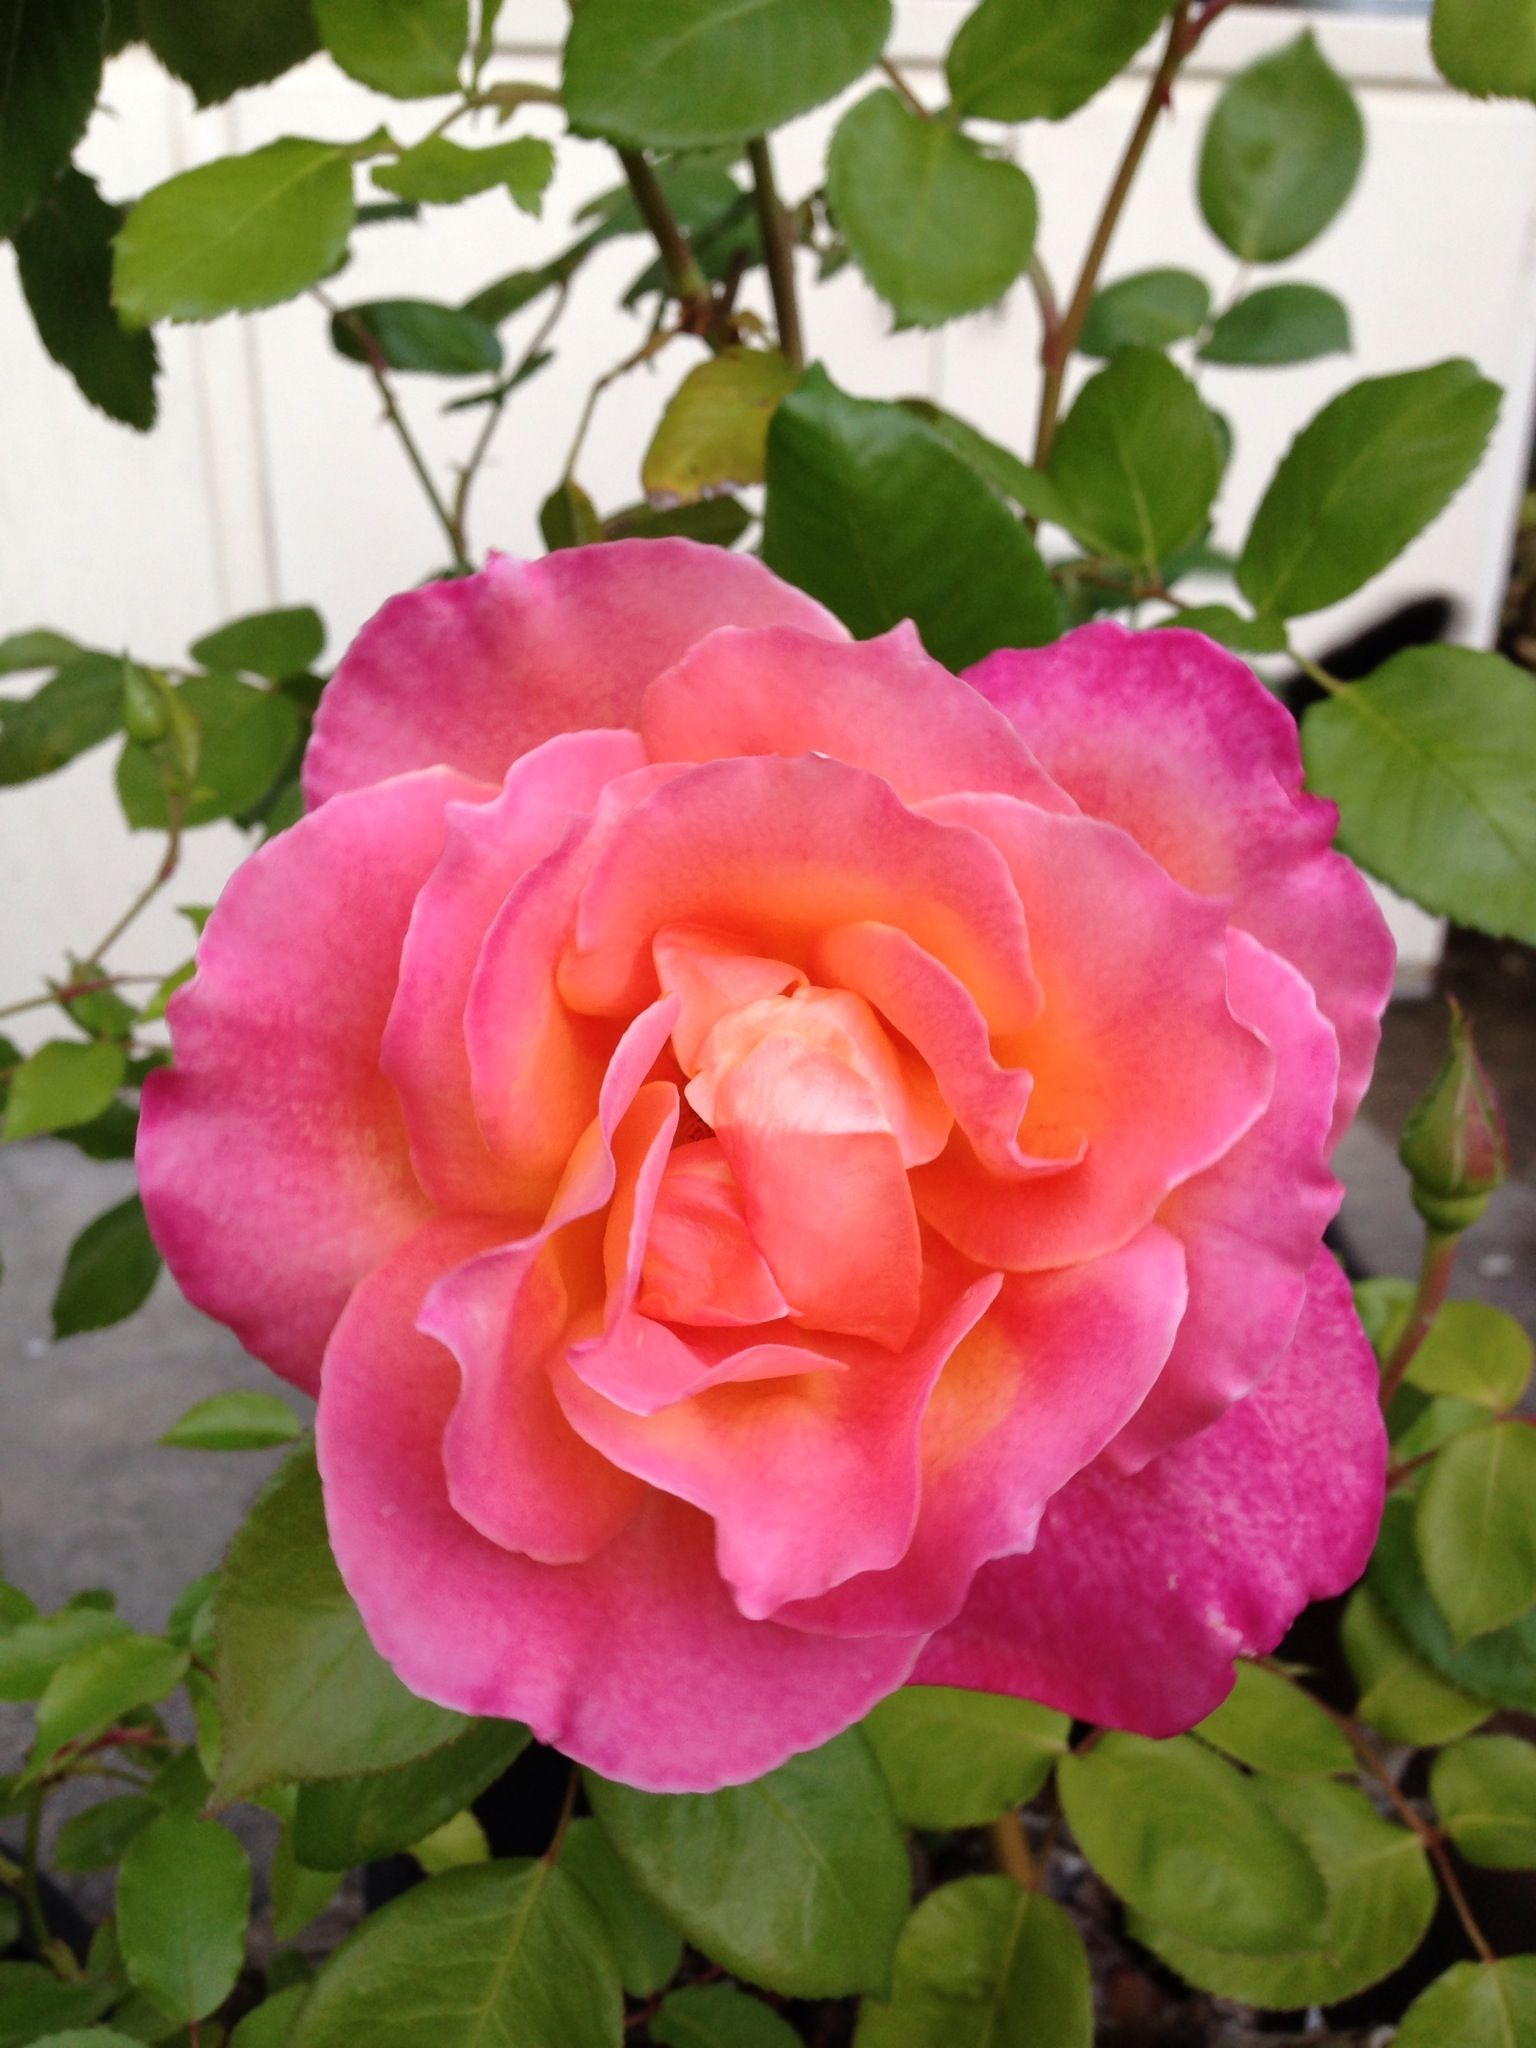 A lovely rose roses pinterest pink roses flowers and flowers a lovely rose izmirmasajfo